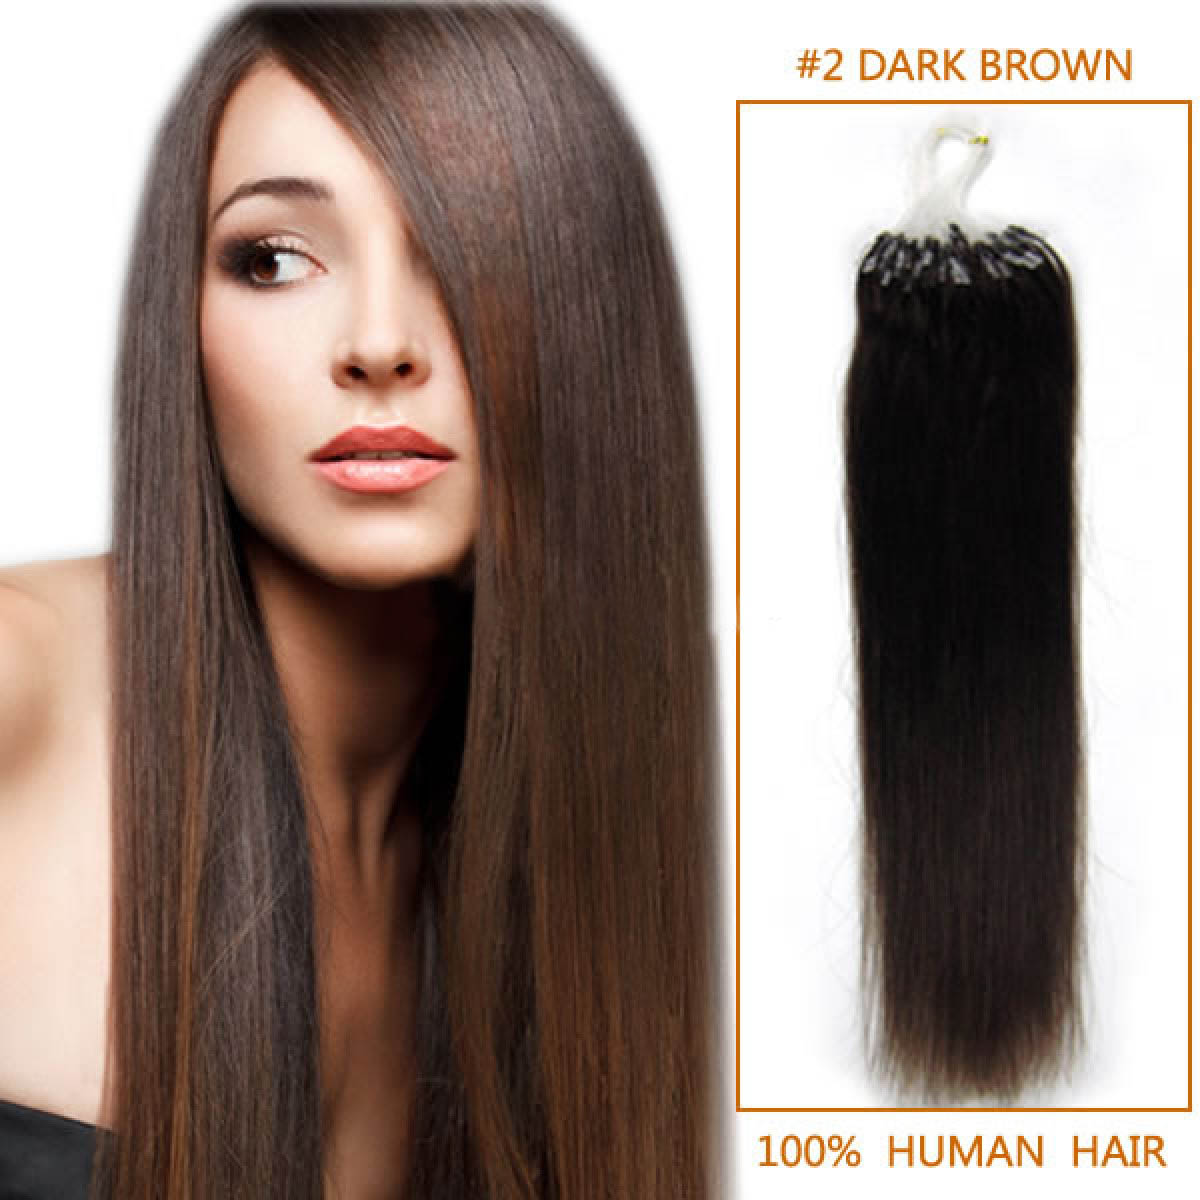 20 Inch #2 Dark Brown Micro Loop Human Hair Extensions 100S